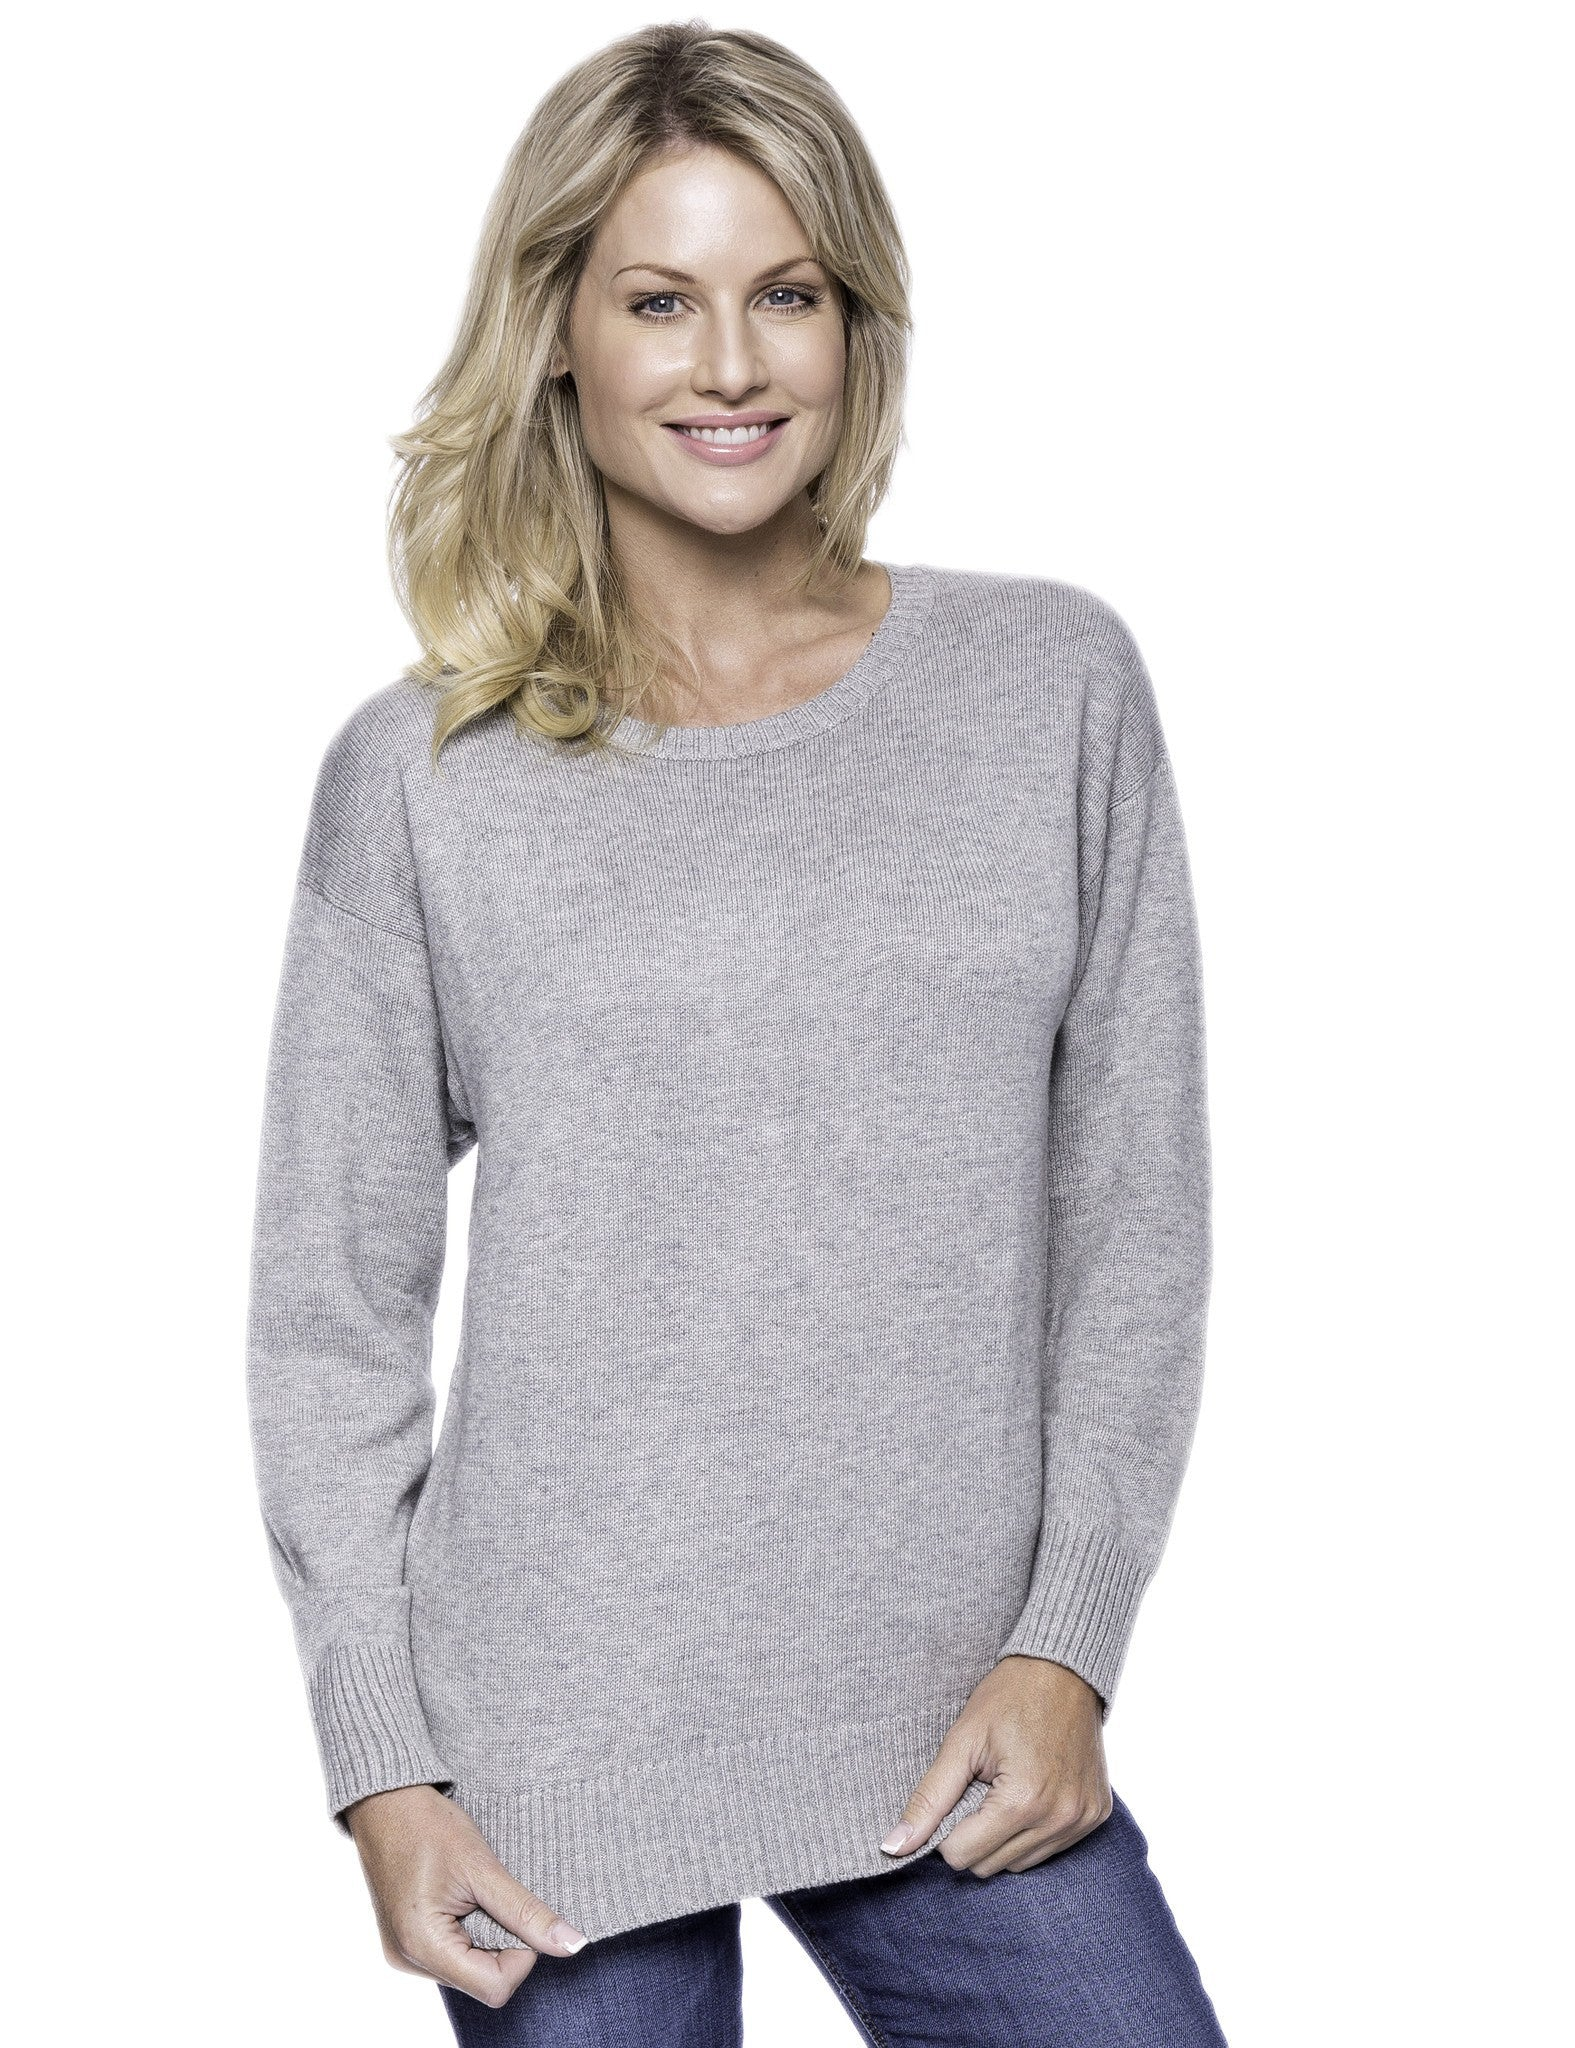 Tocco Reale Women's Cashmere Blend Crew Neck Sweater with Drop Shoulder